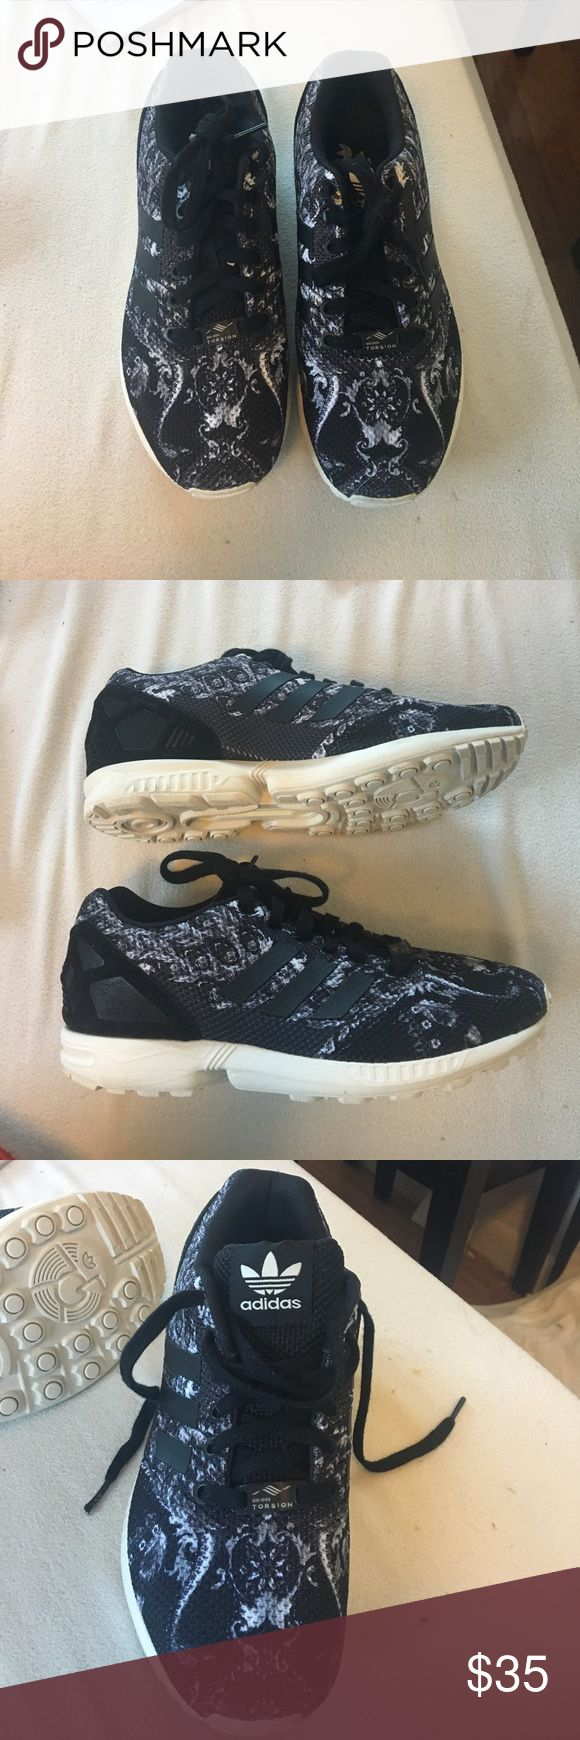 Adidas zx flux shoes Worn only twice! Super comfy adidas original zx flux tennis shoes. Beautiful pattern! Adidas Shoes Sneakers